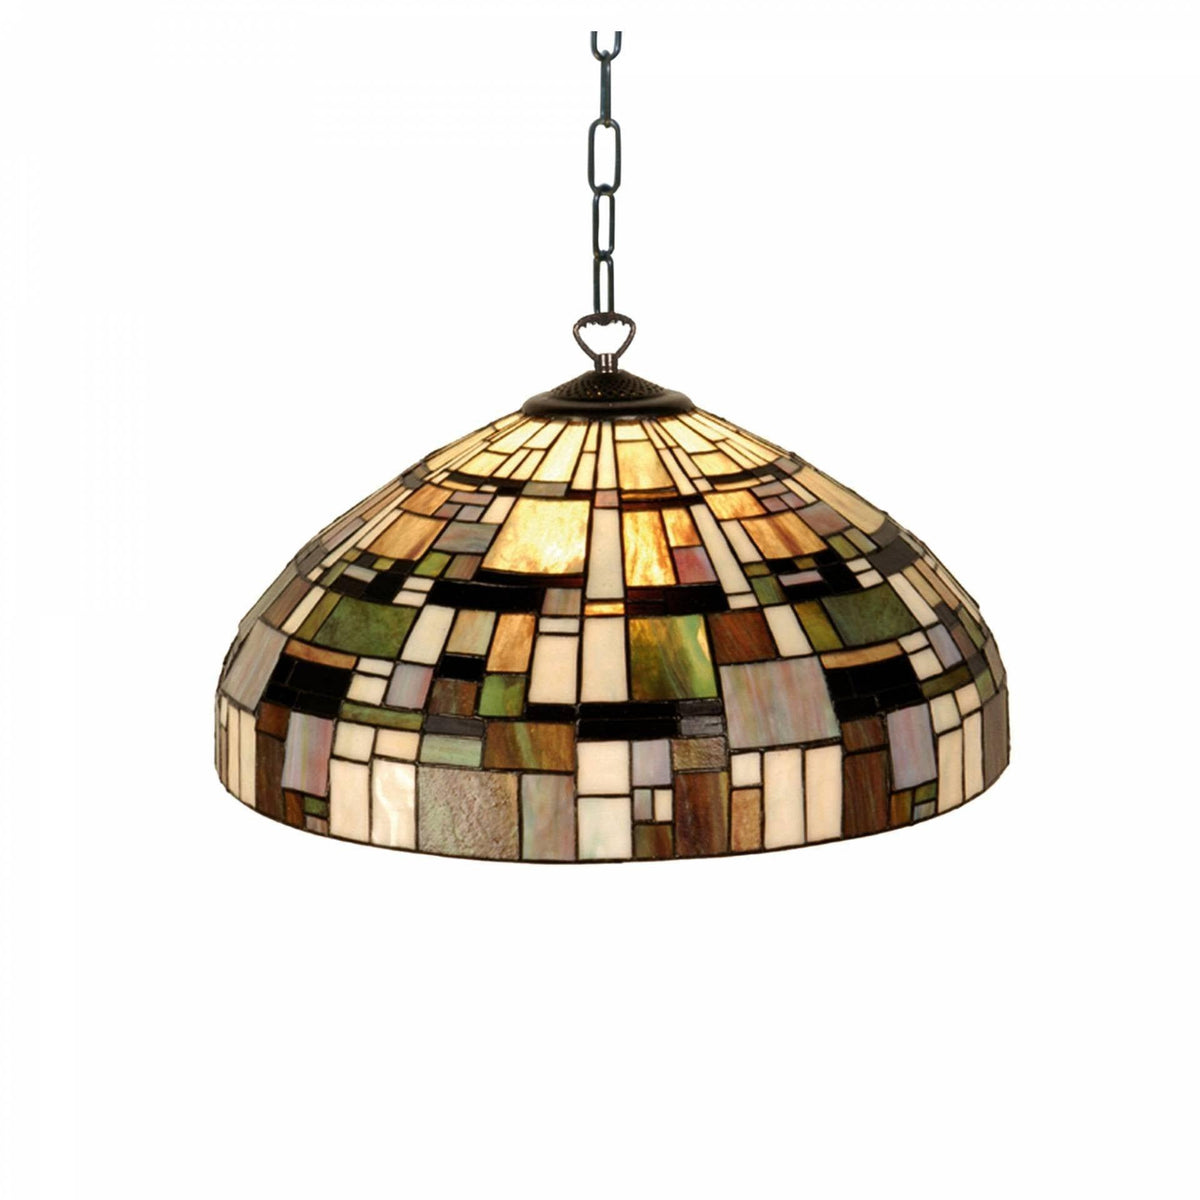 Tiffany Ceiling Pendant Lights - Falling Water Tiffany Ceiling Light,Single Bulb Fitting